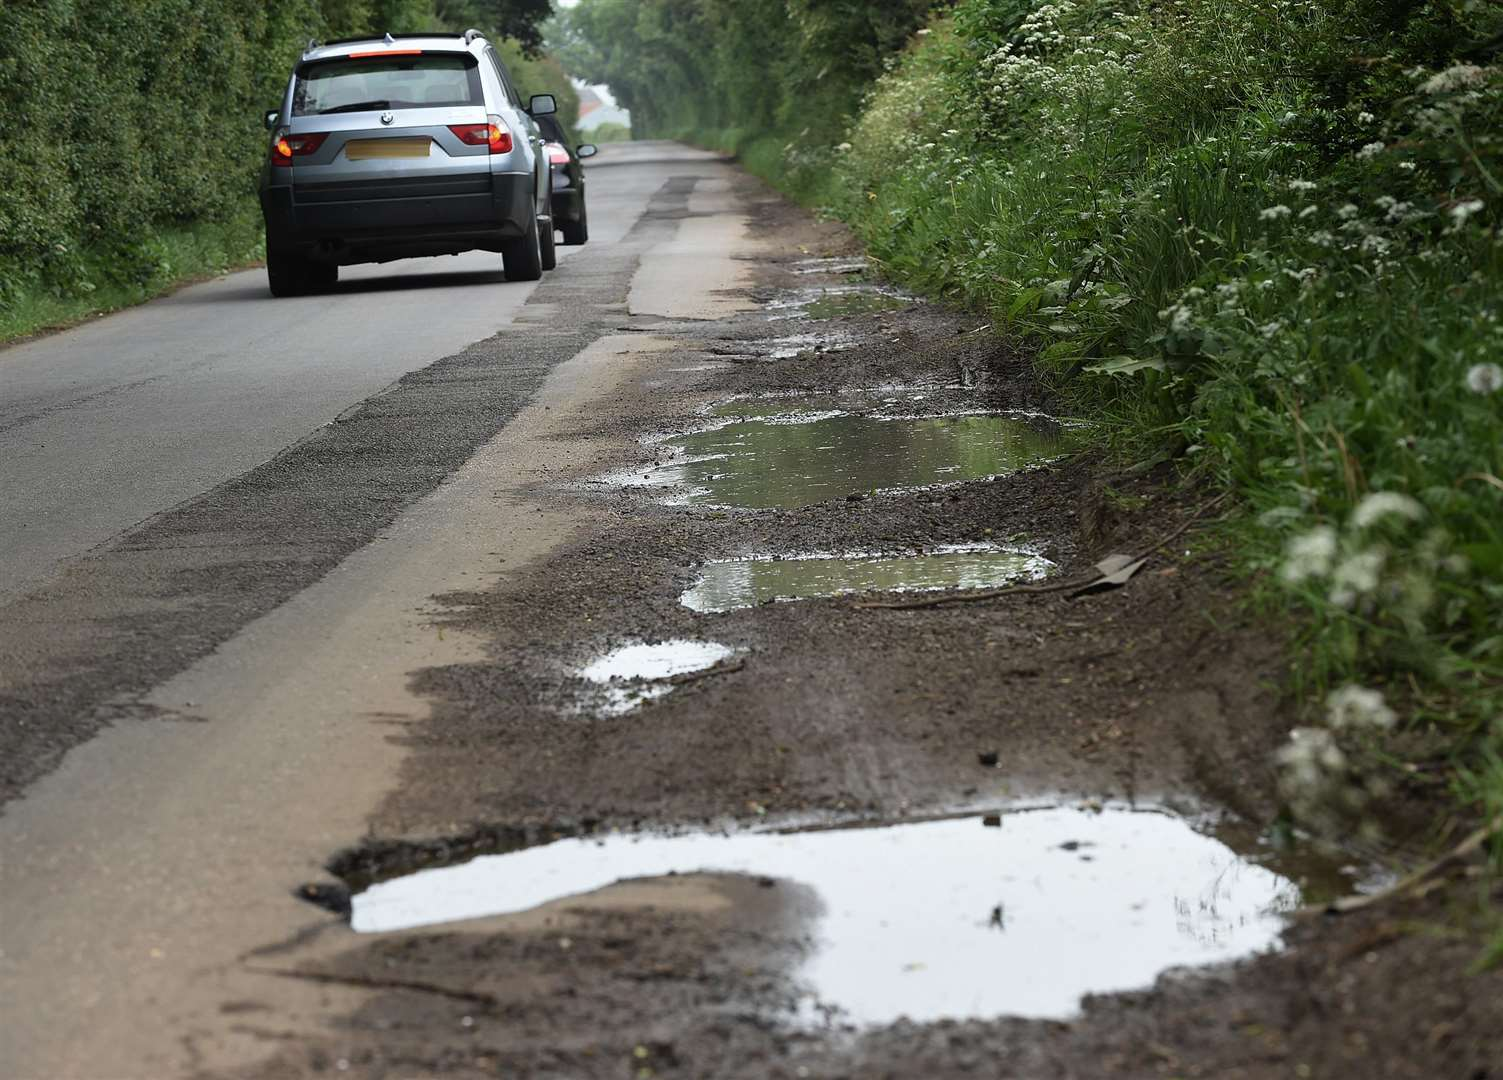 Lincolnshire has received an extra £13.7m for road repairs